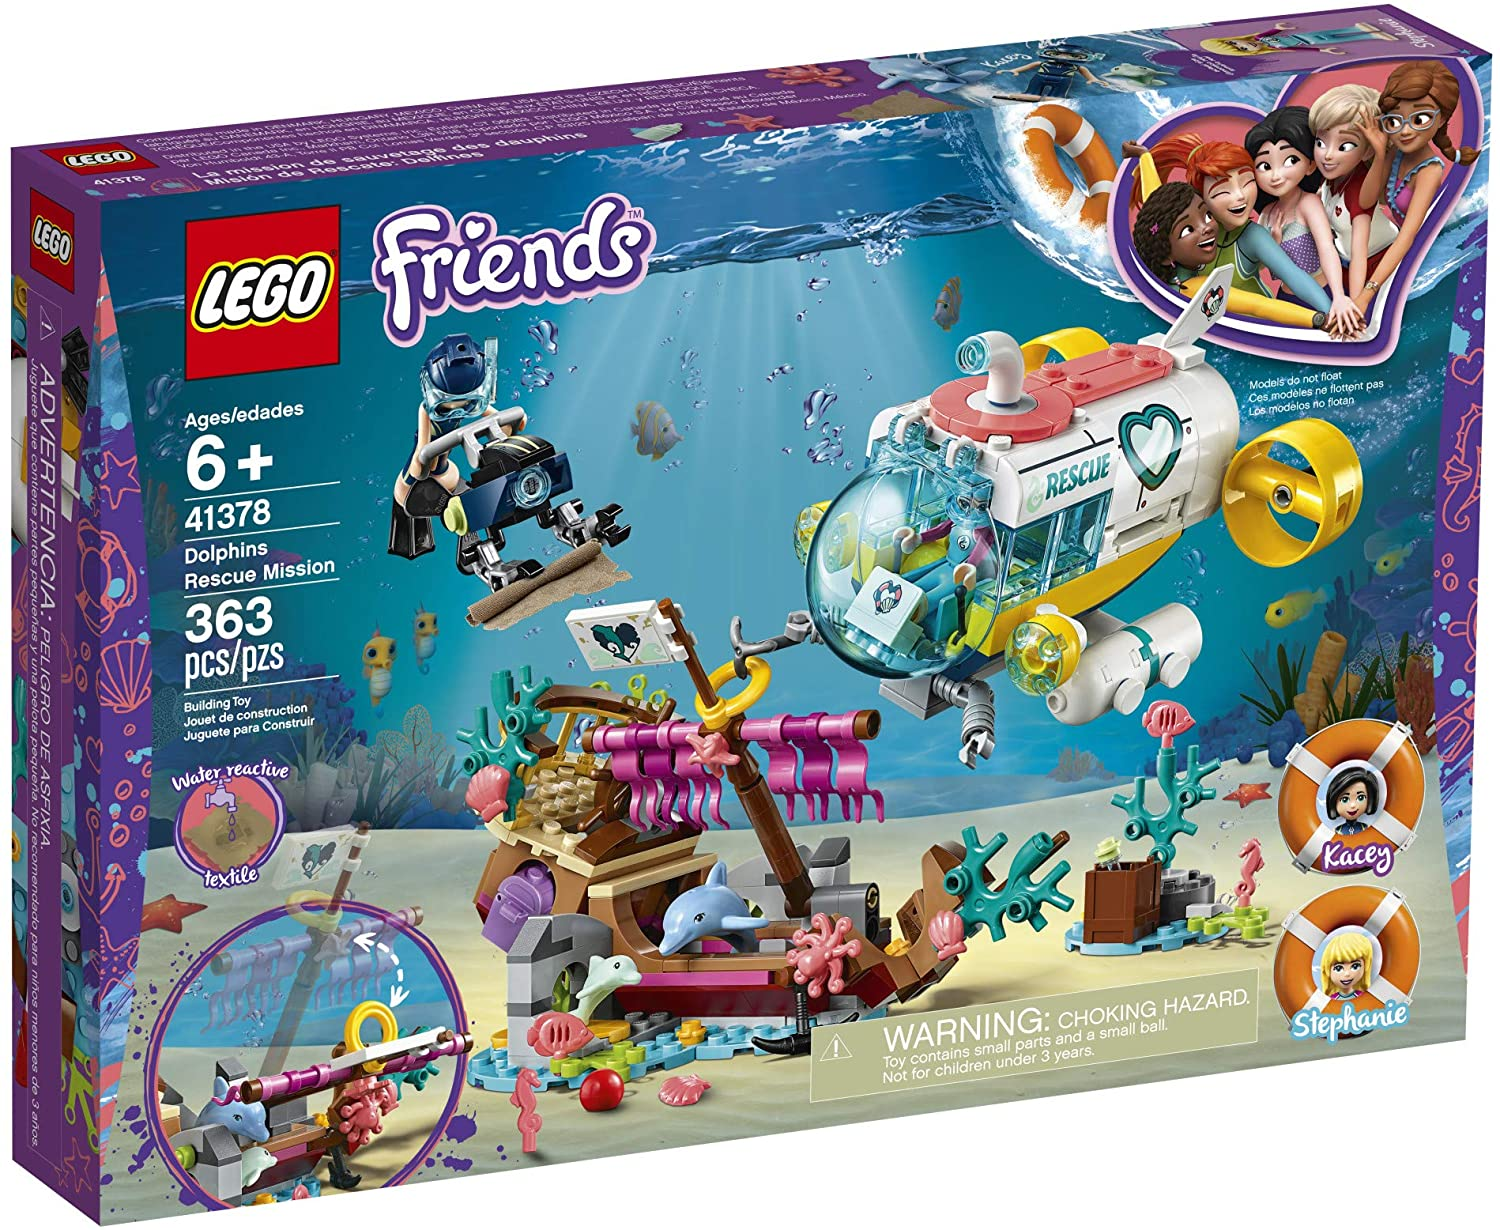 Dolphin Rescue Mission Lego Friends